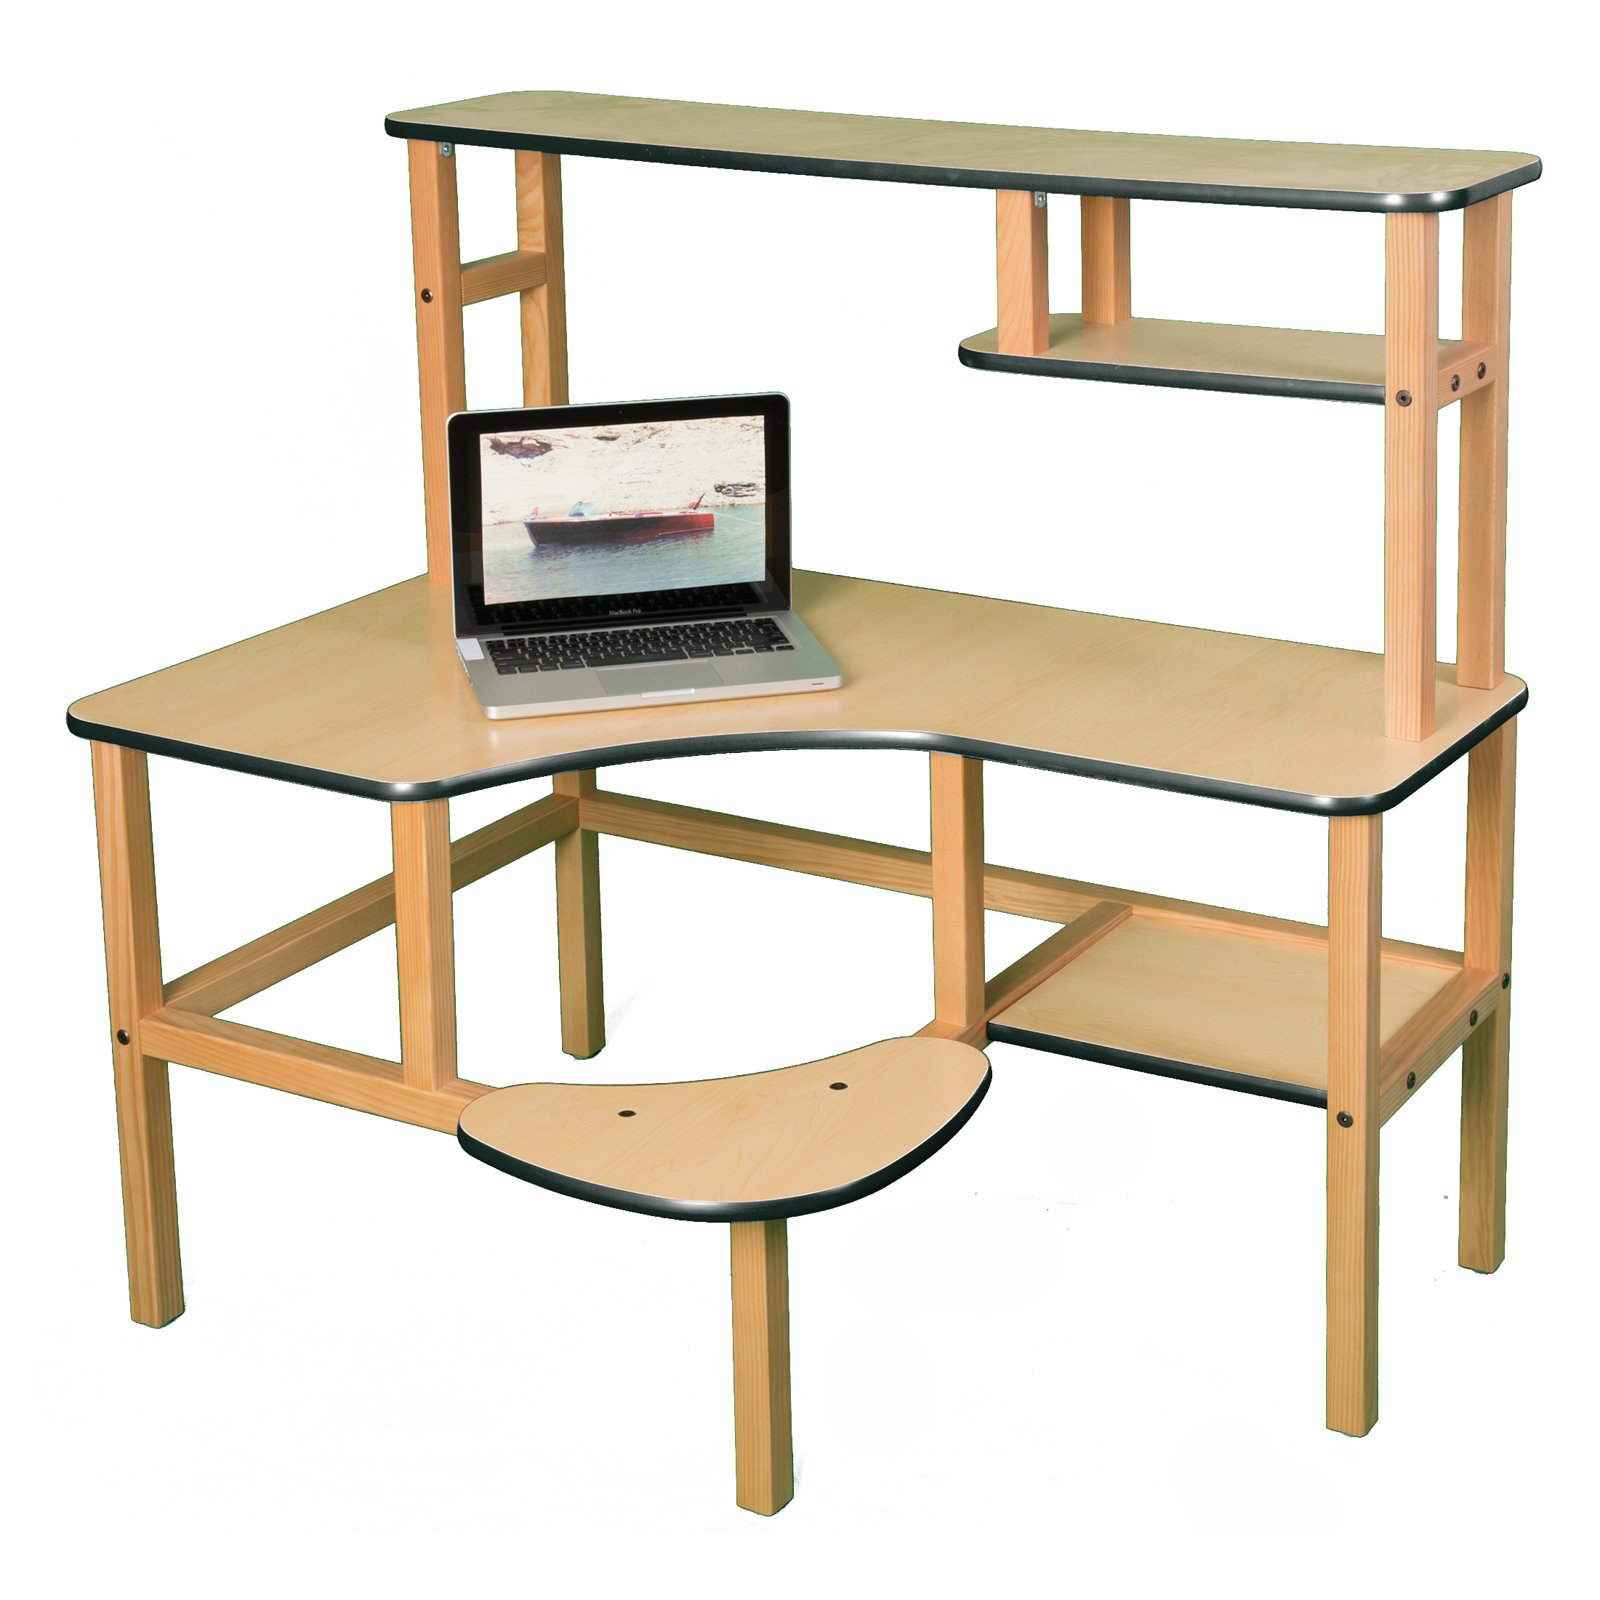 Wild Zoo Grade School Computer Desk with Optional Hutch and Printer Stand - Maple